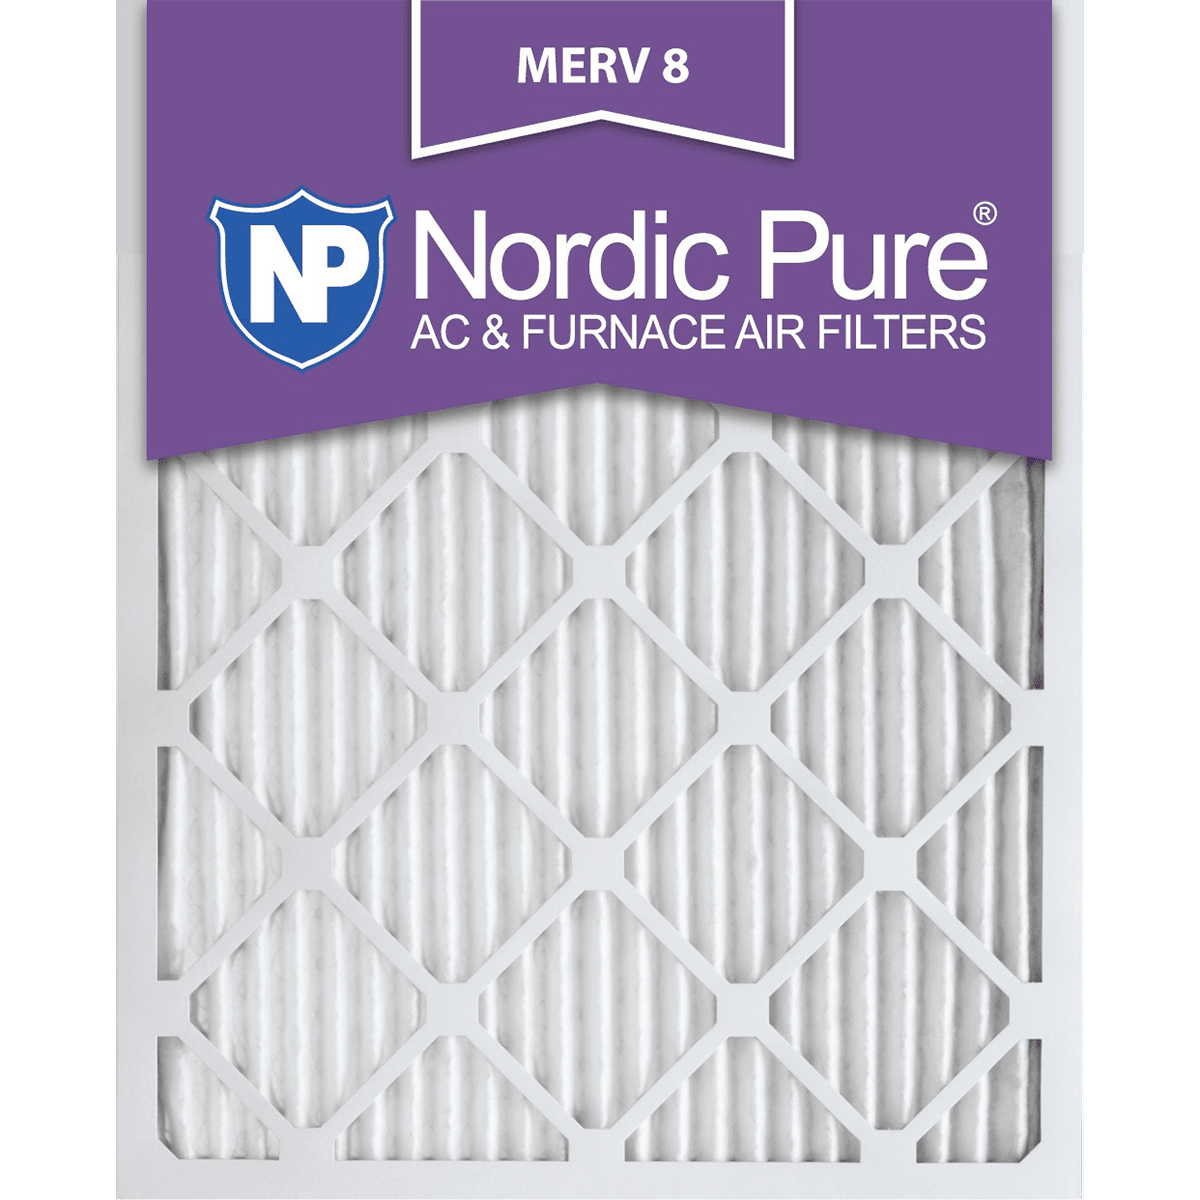 Nordic Pure MERV 8 1-in. Pleated Furnace Filters (6 Pack) no6649